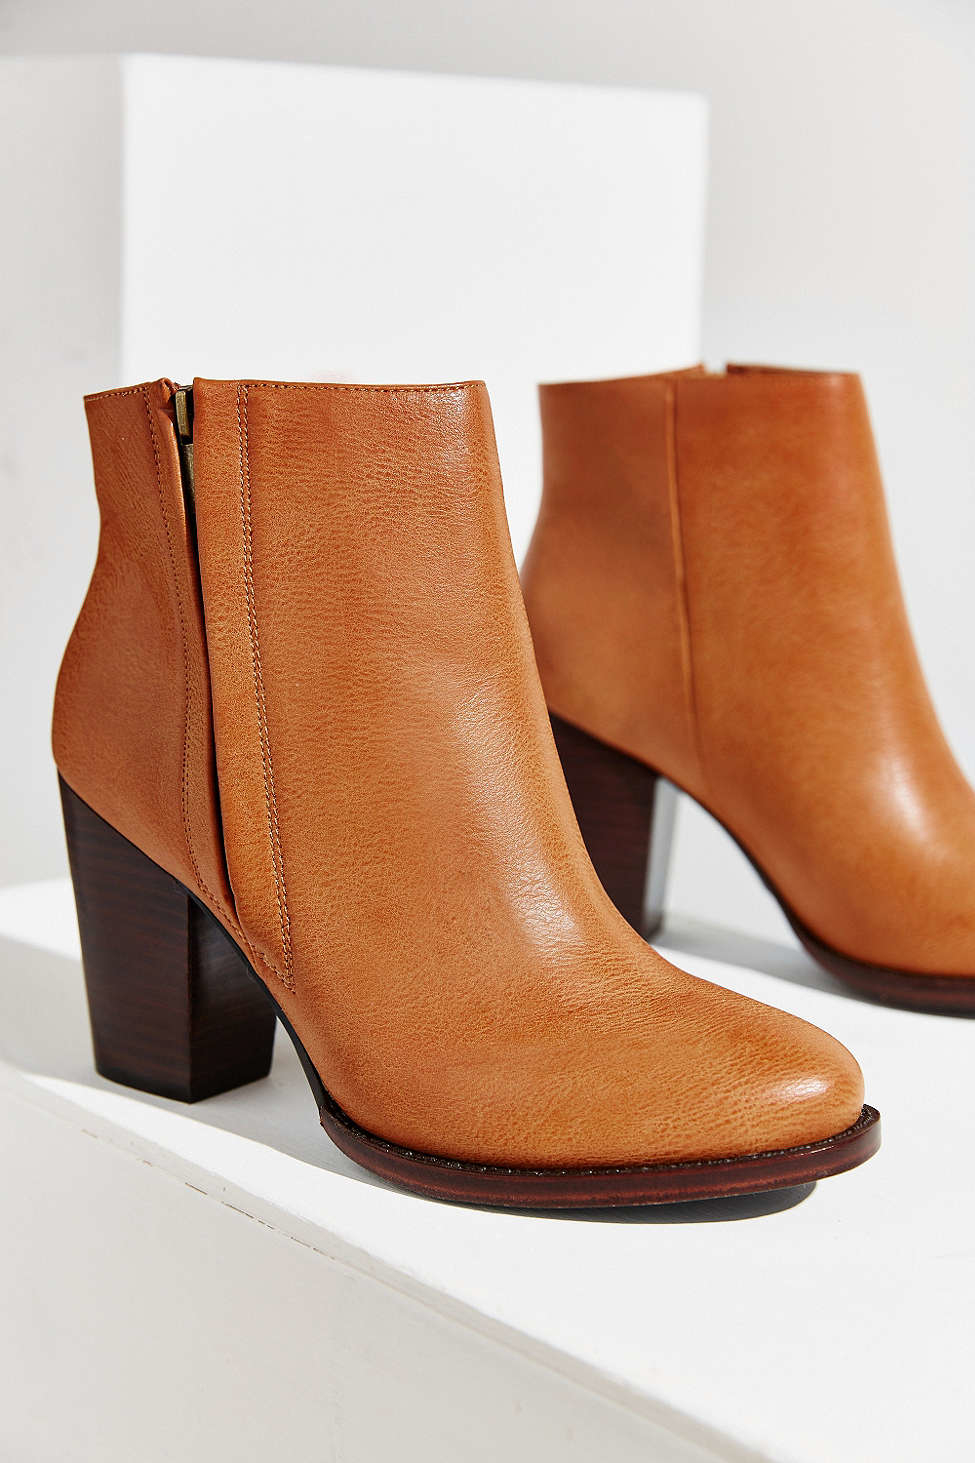 Silence   noise Half-stacked Heeled Ankle Boot in Brown | Lyst